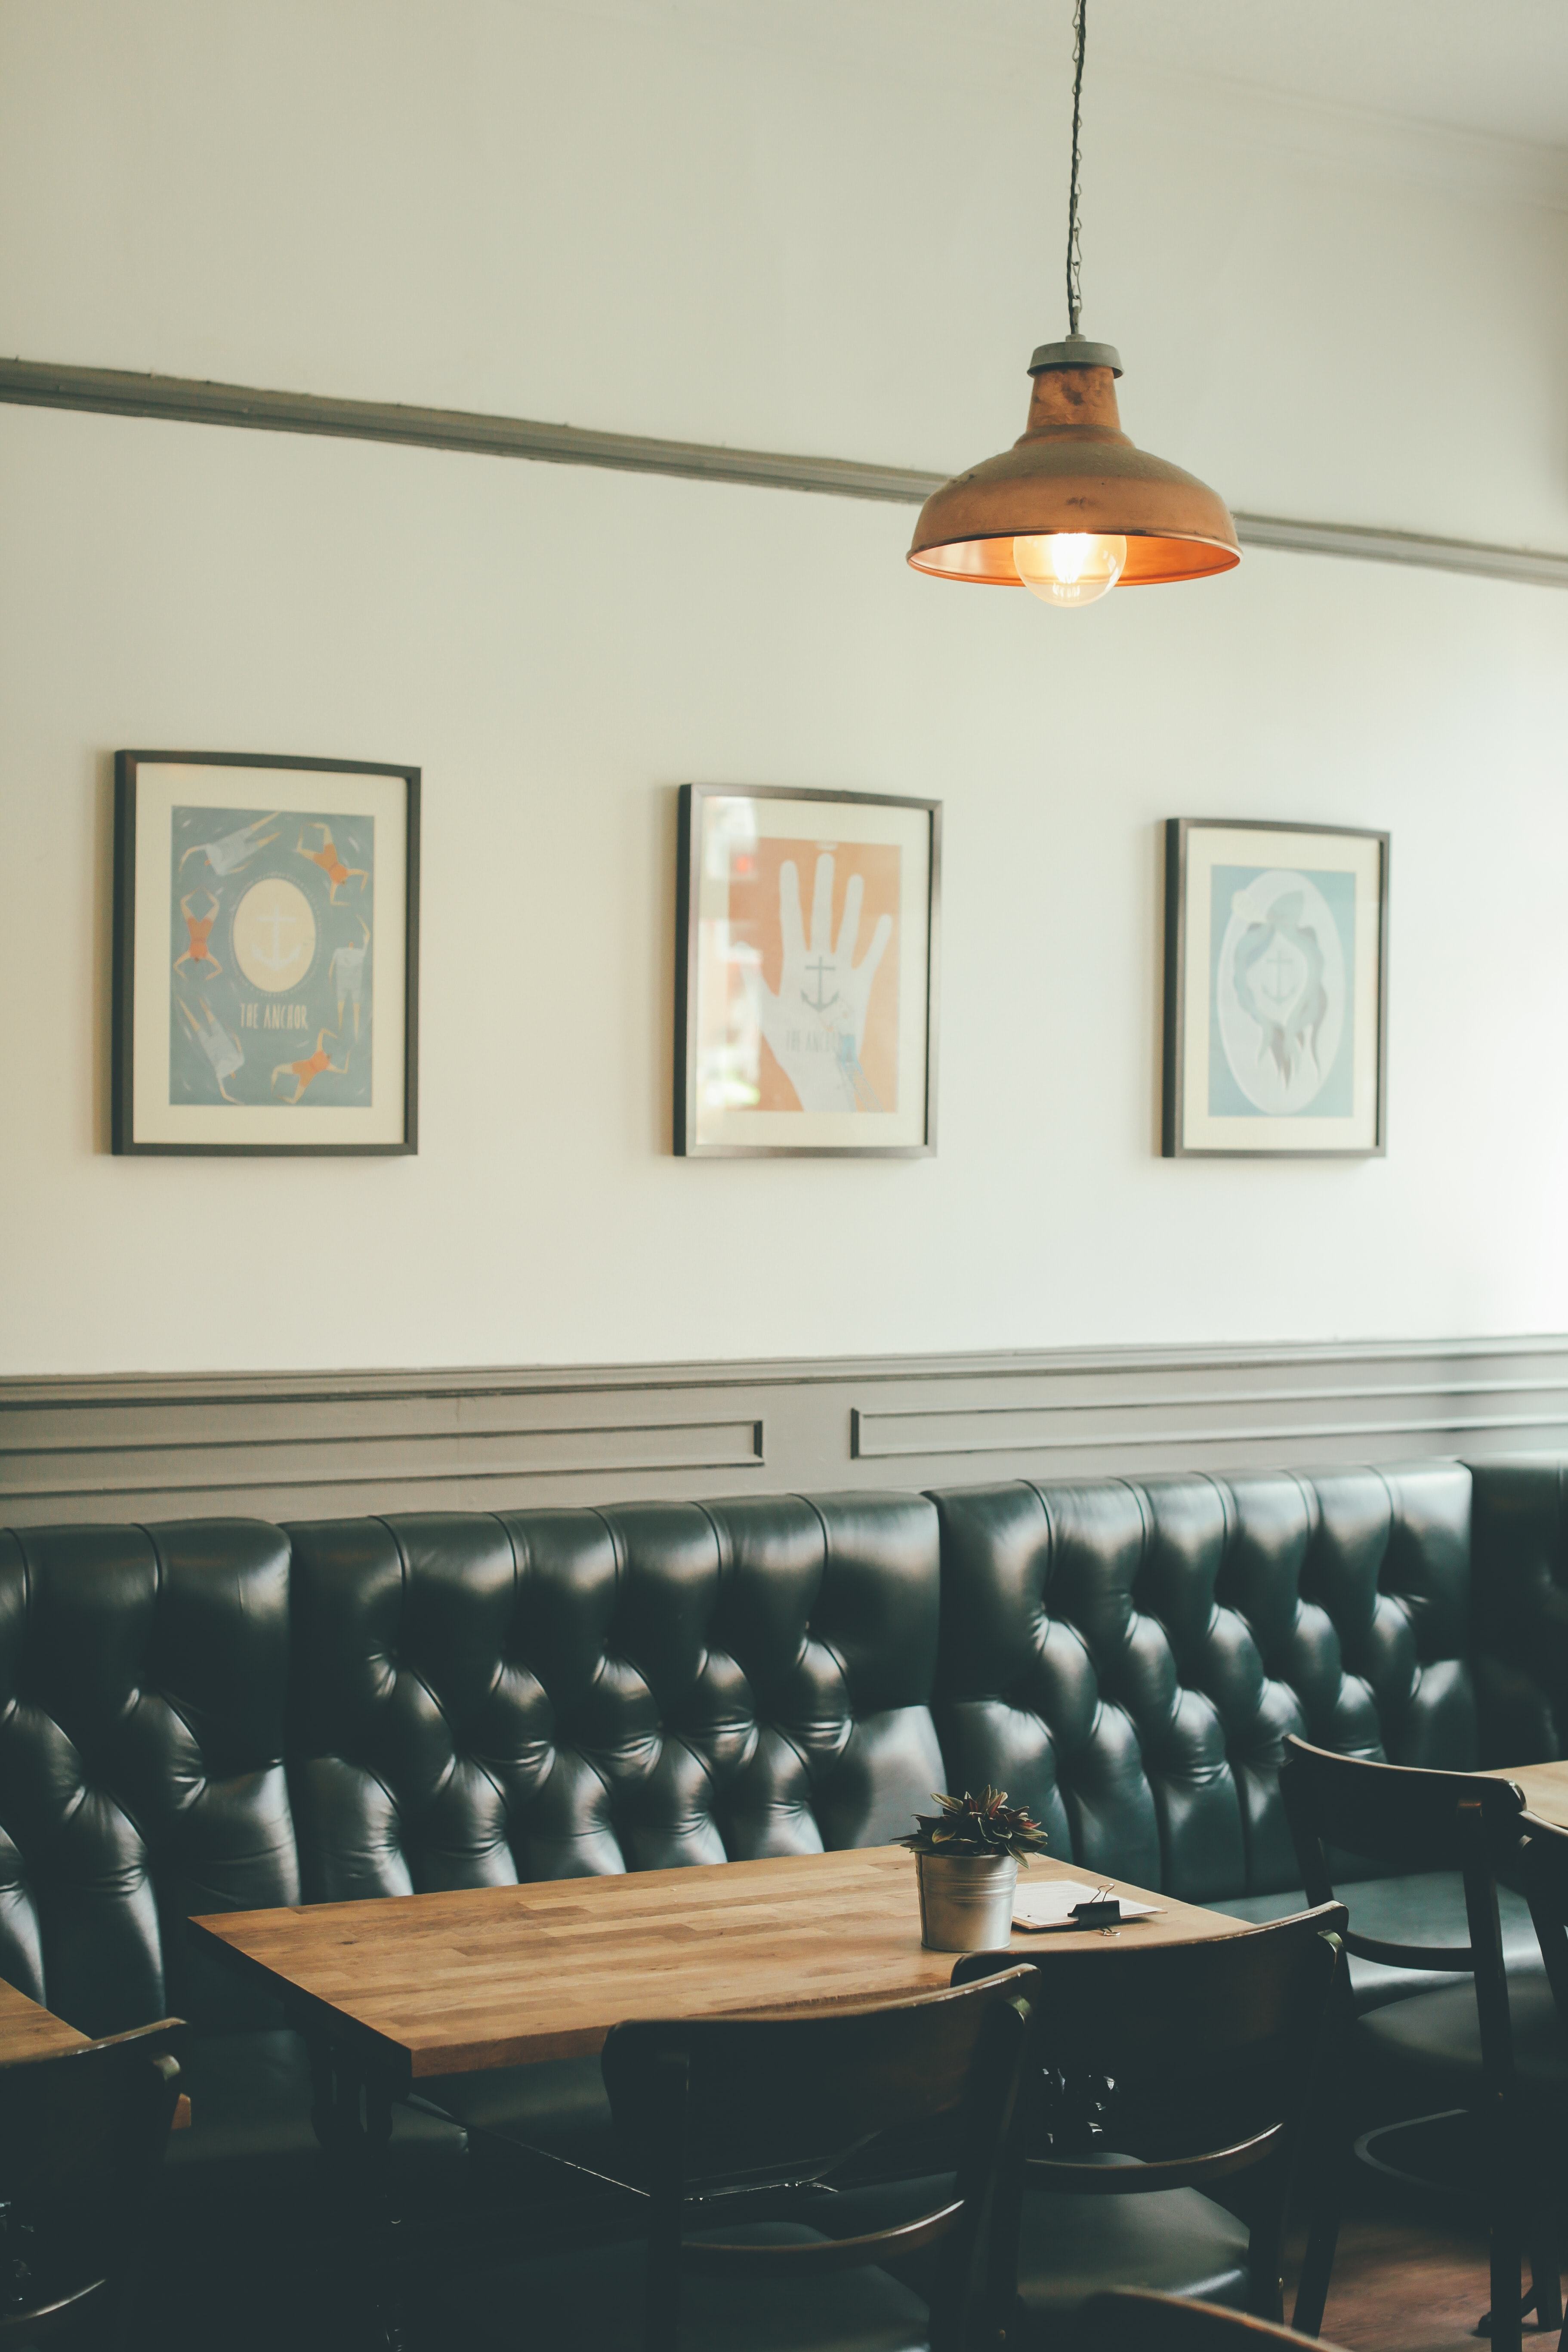 Tables next to a padded leather sofa in a café